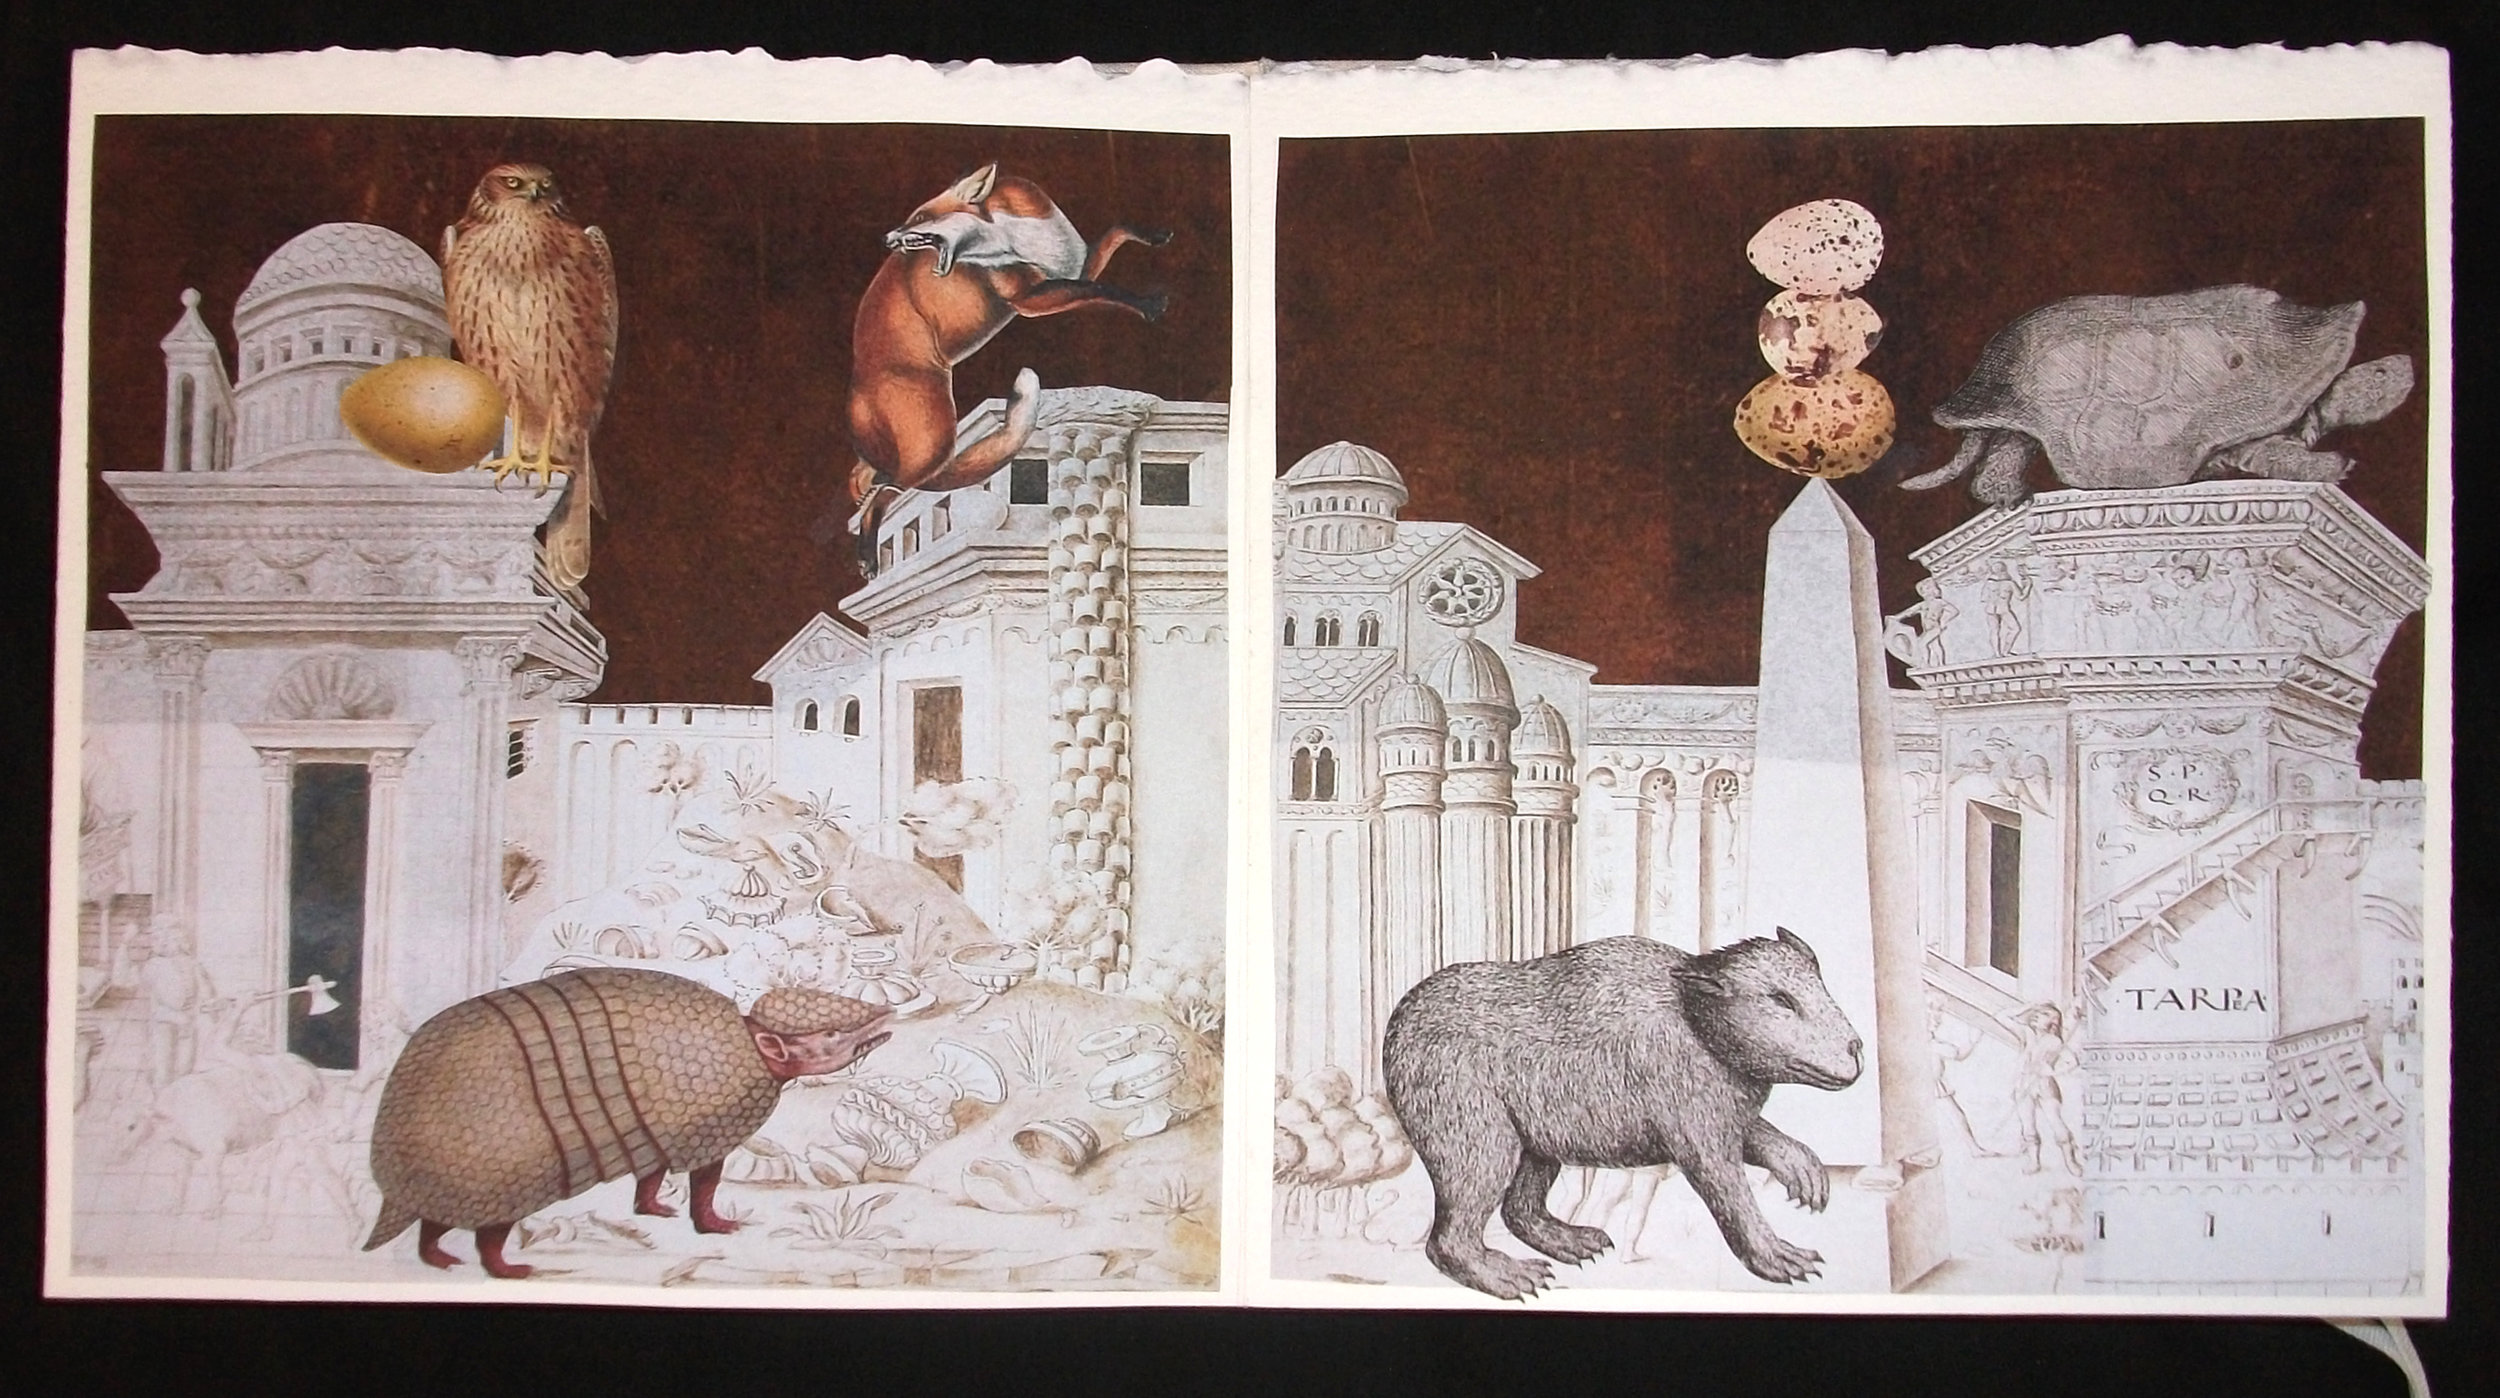 Lynn Skordal,  La Cite Des Animaux,  OOAK Collaged artist Book, 2011, Mercer Island, WA